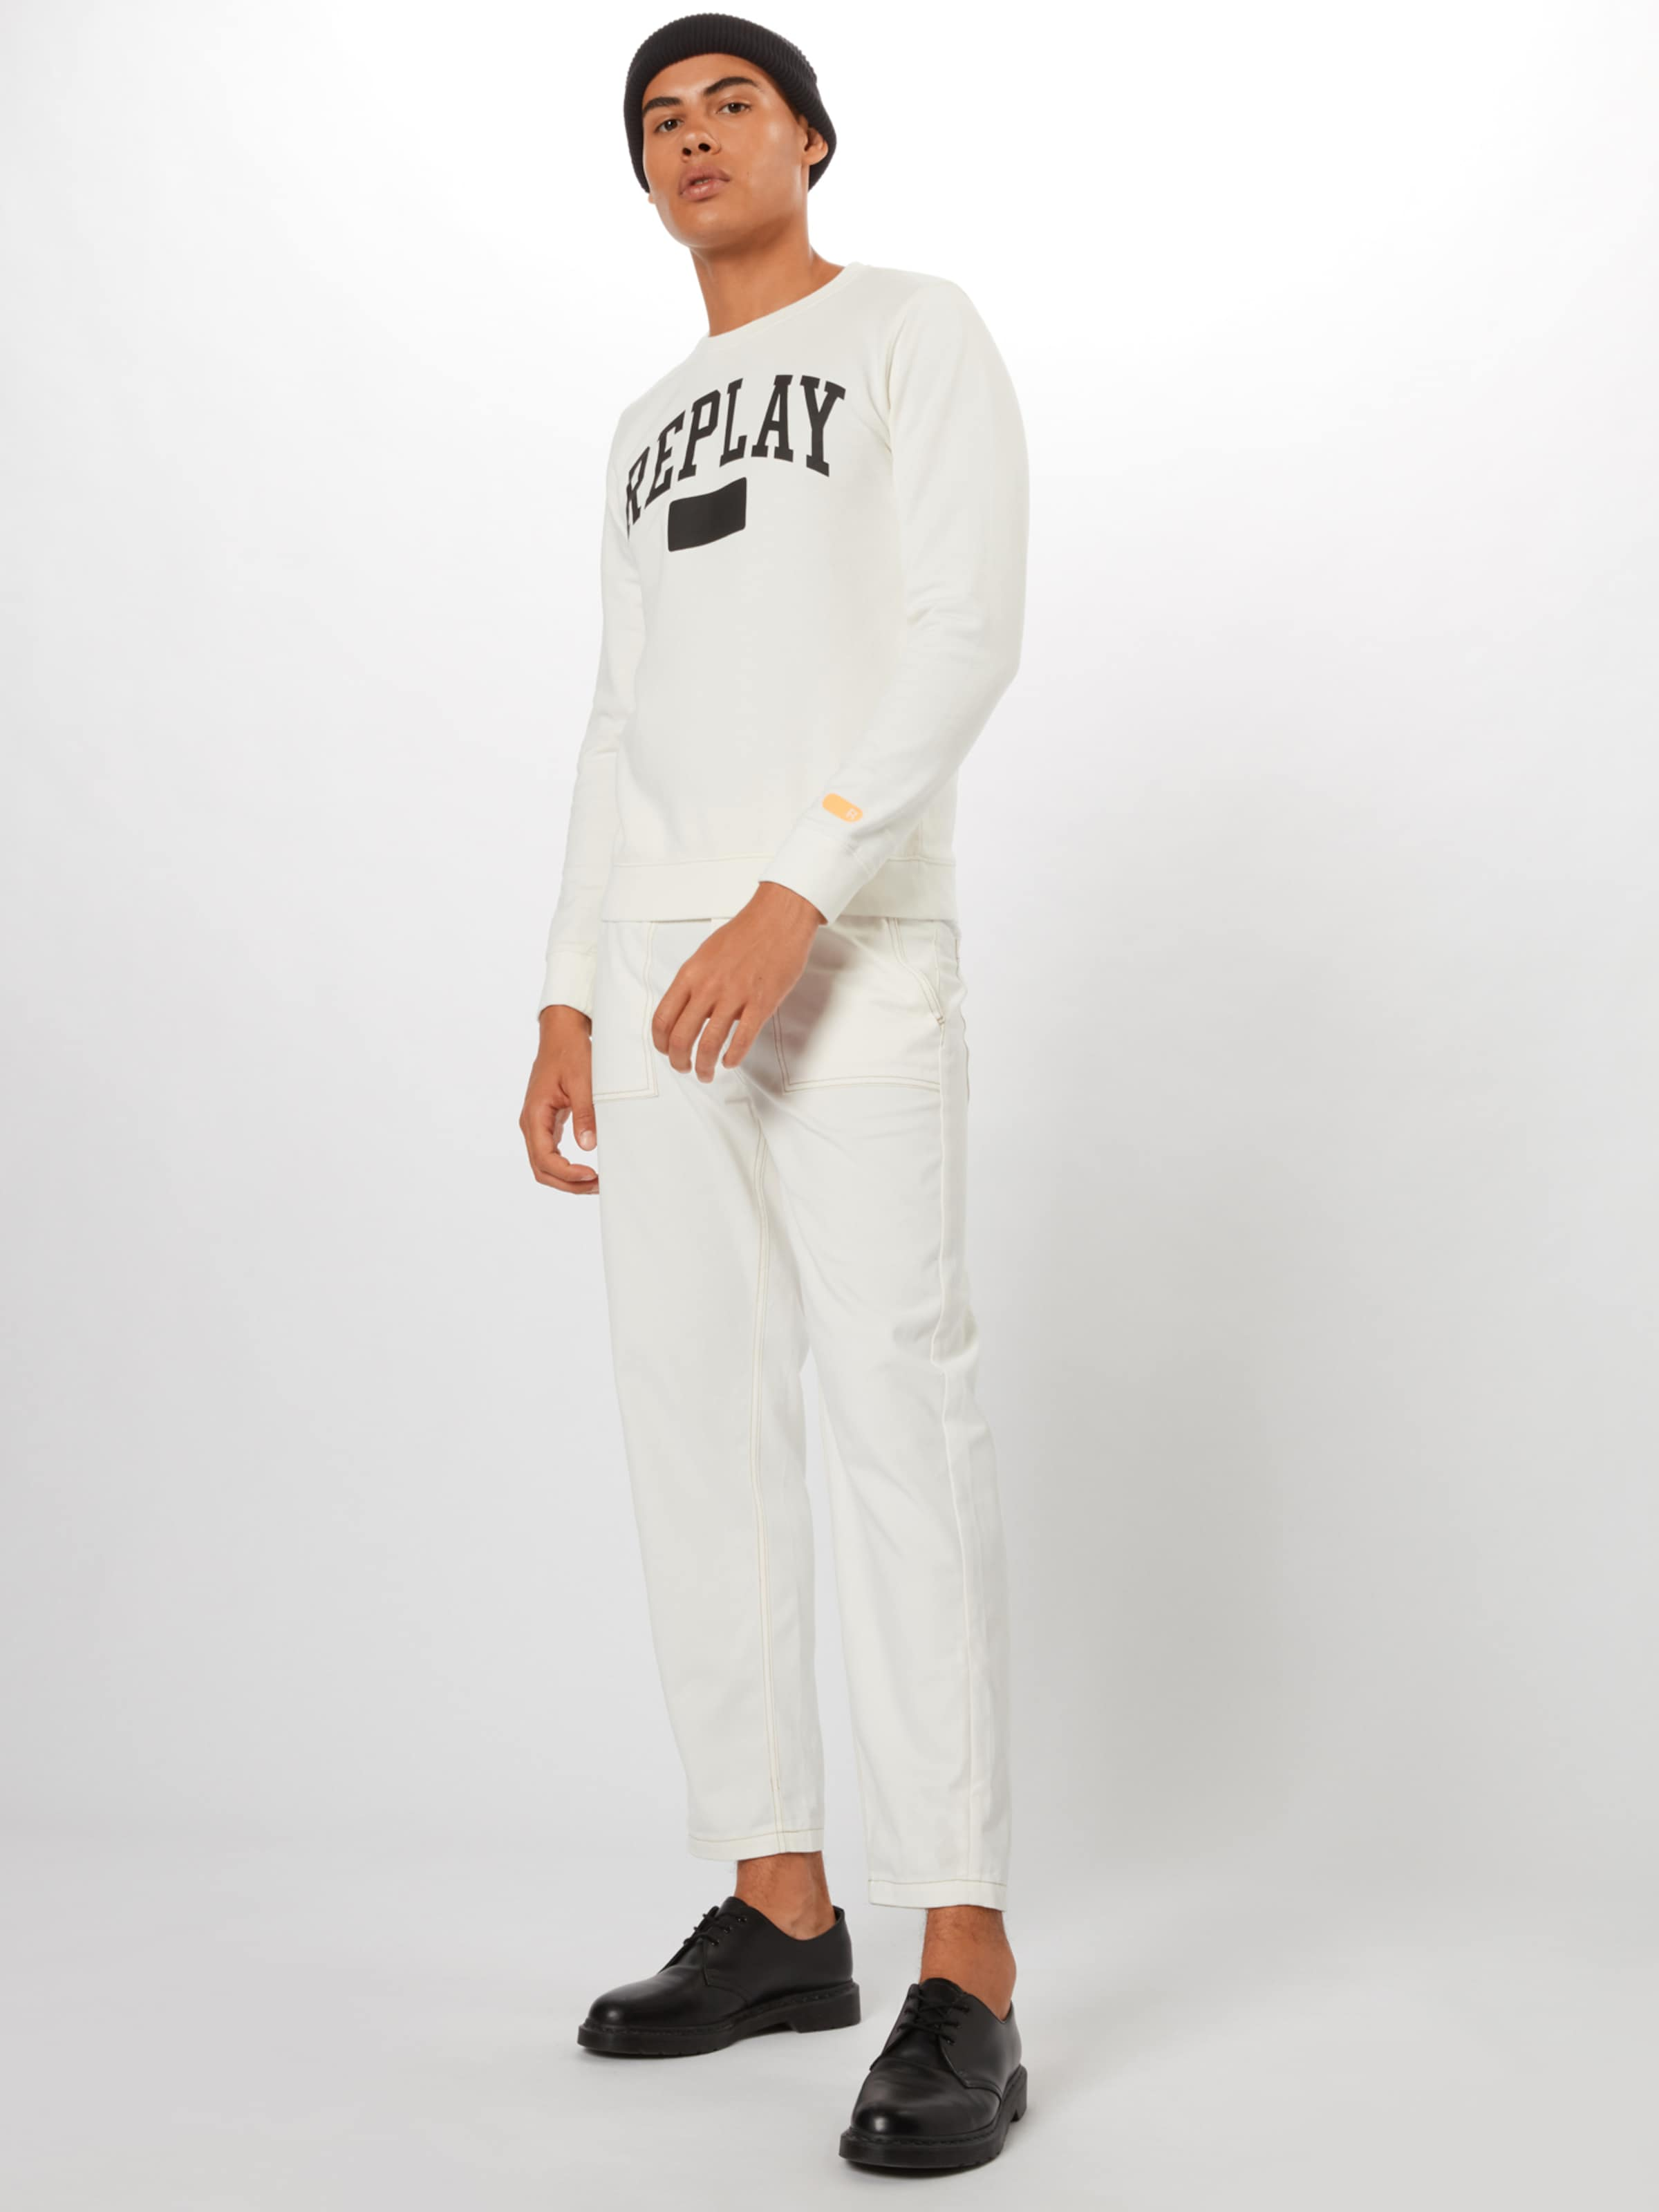 Replay shirt Sweat NoirBlanc Replay En shirt Sweat 5RAjqc4L3S